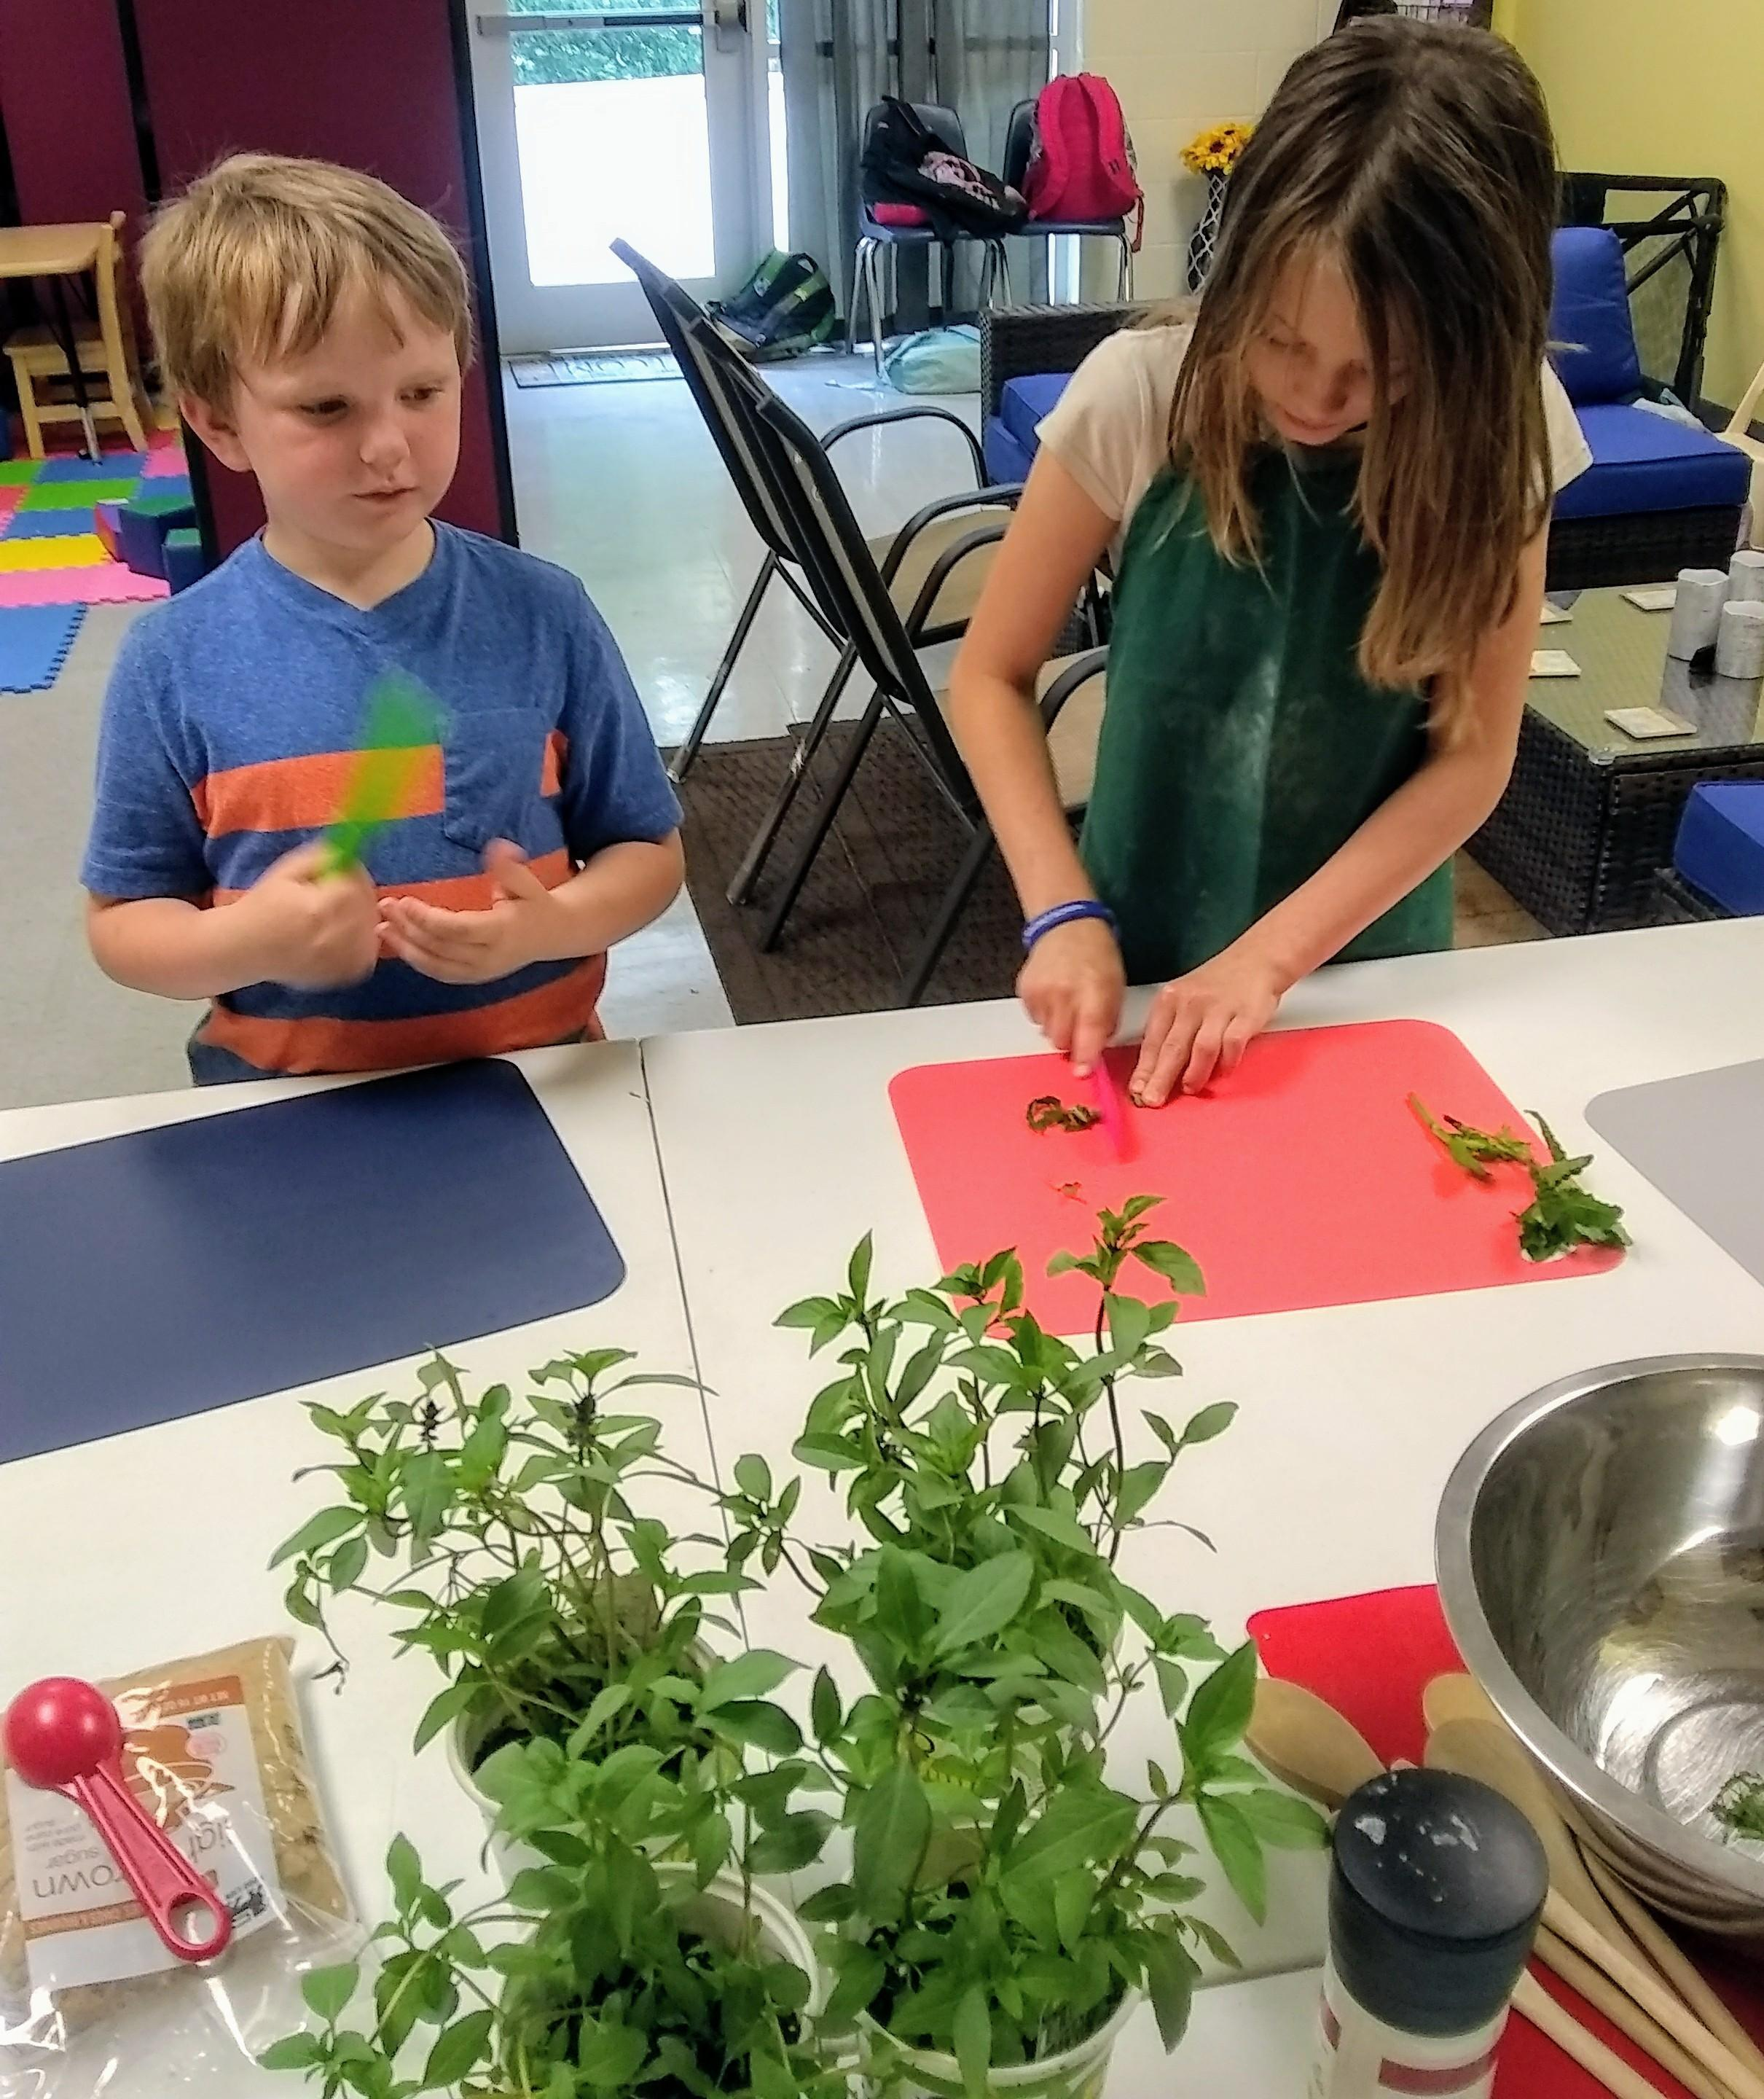 kids chopping herbs for salad